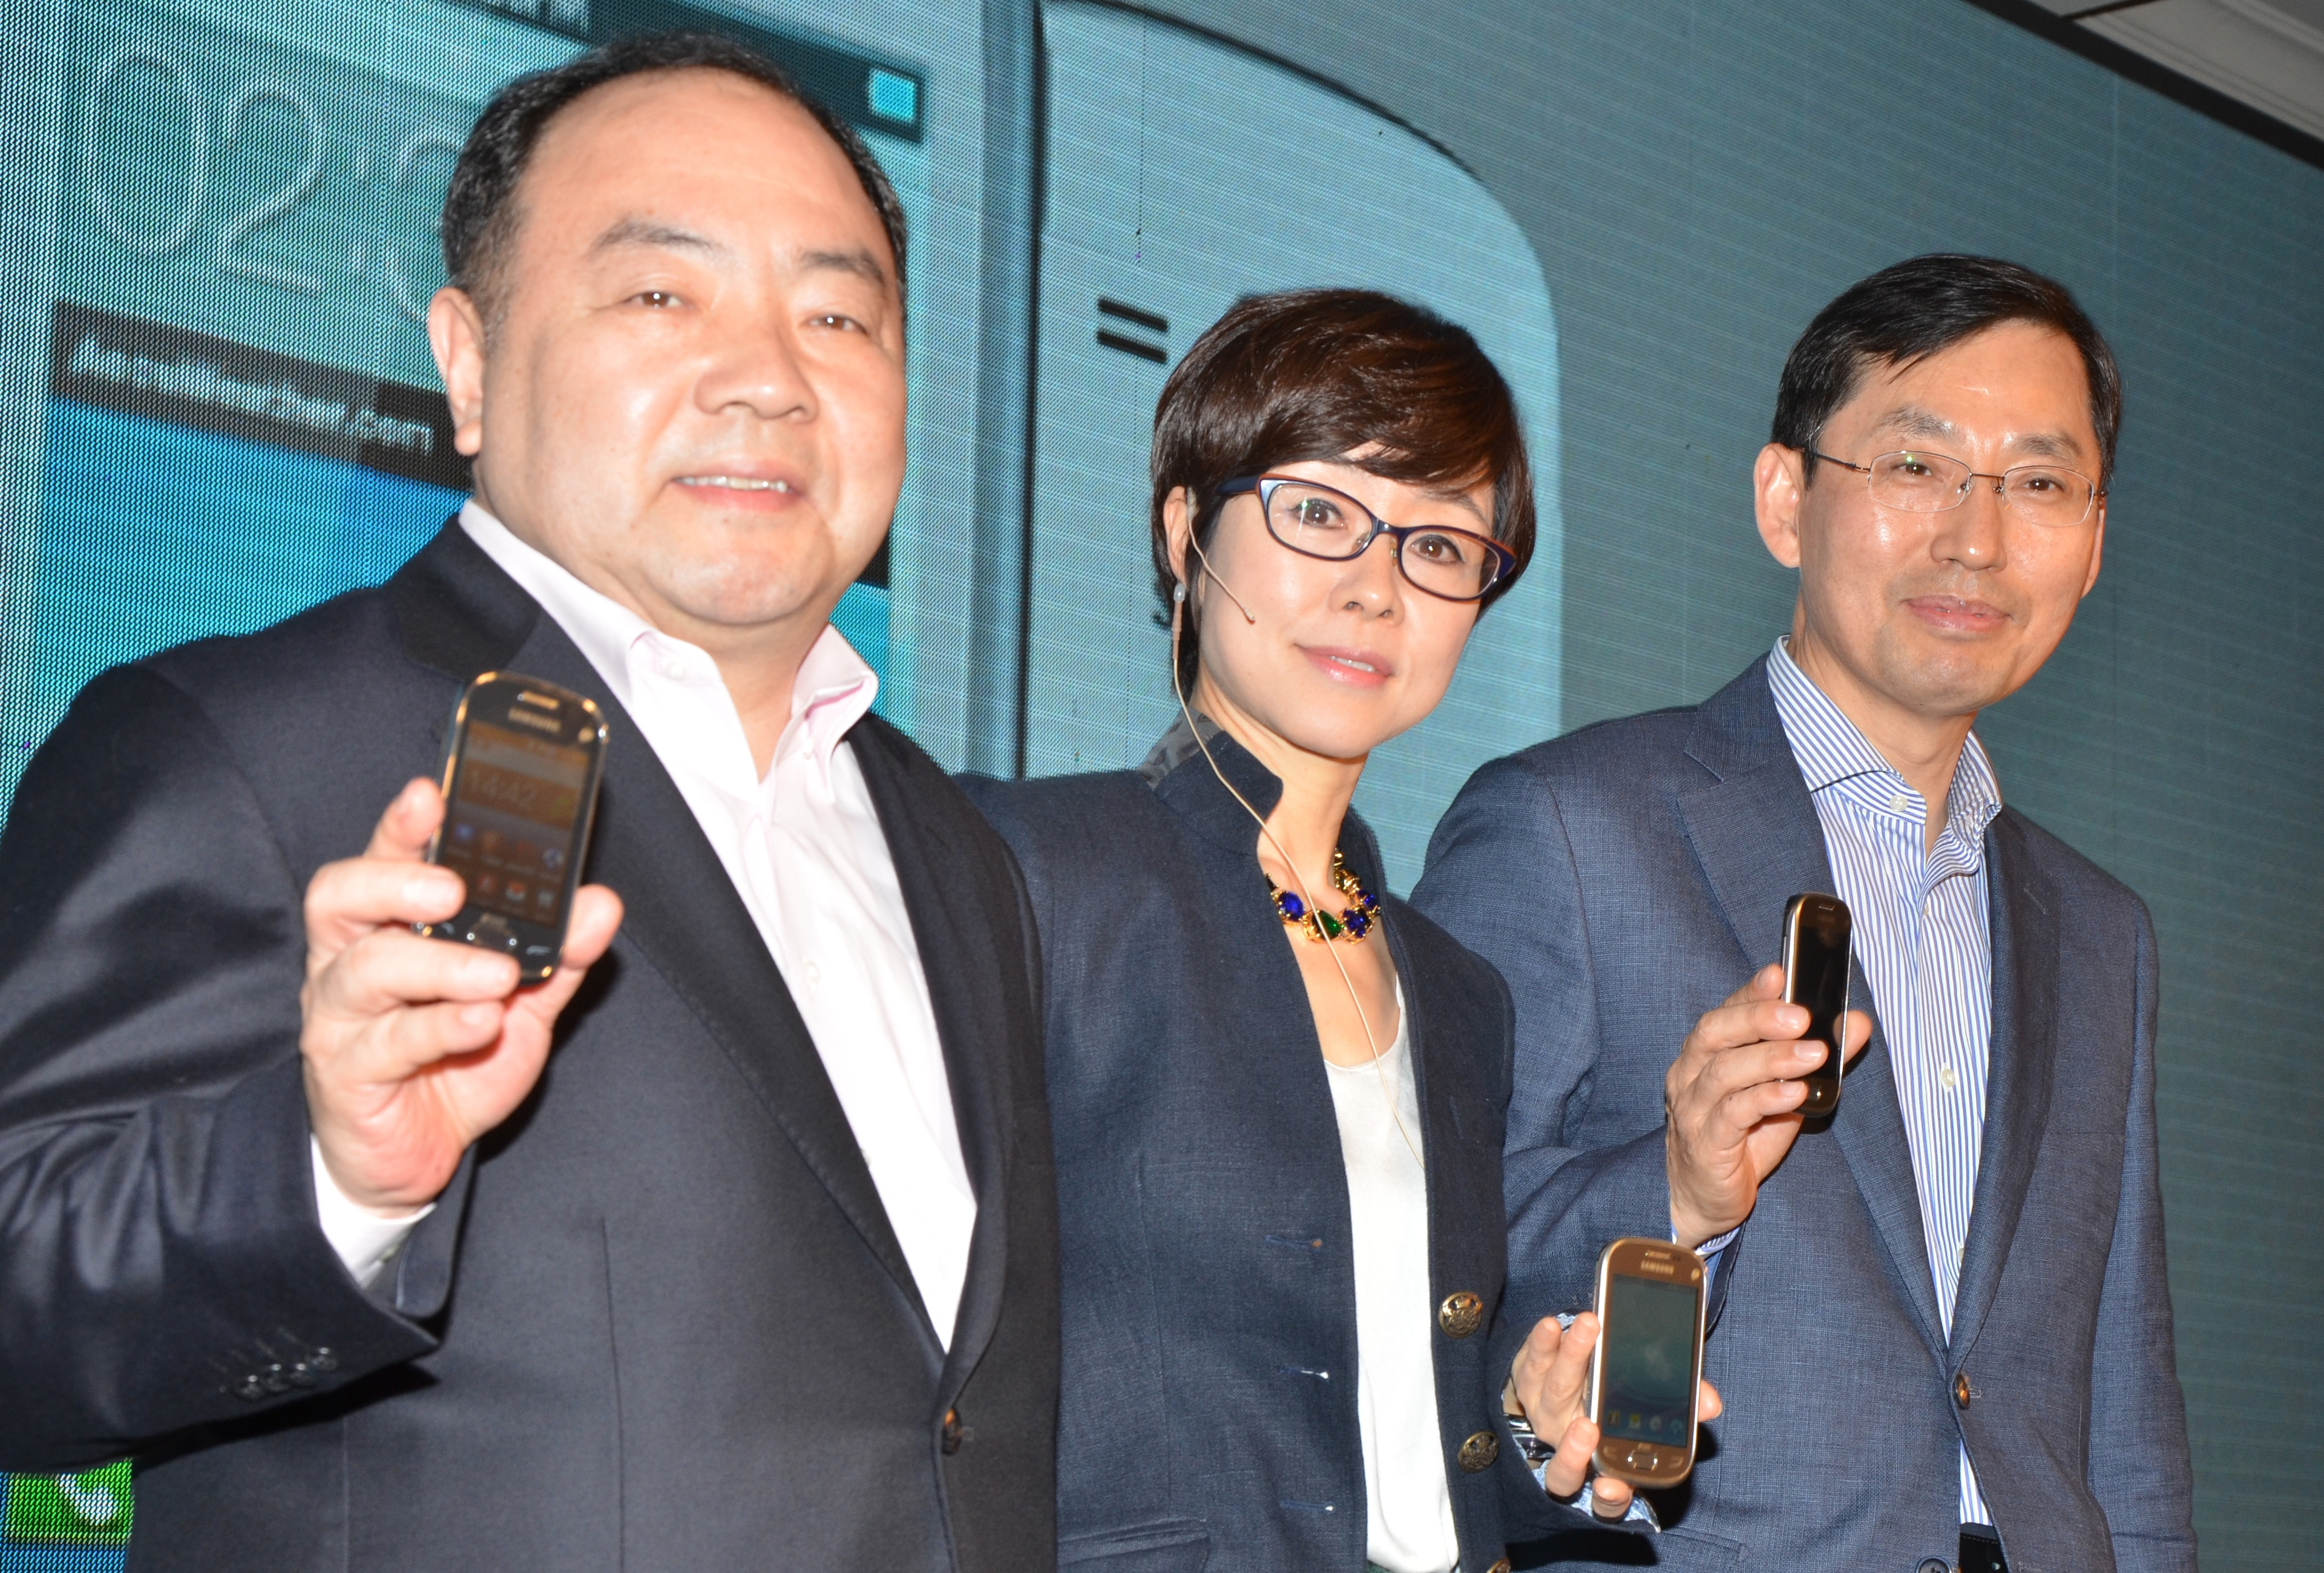 Hung Sik Cho, Younghee Lee, mobile communication, Samsung Electronics, B D Park, REX smart phones